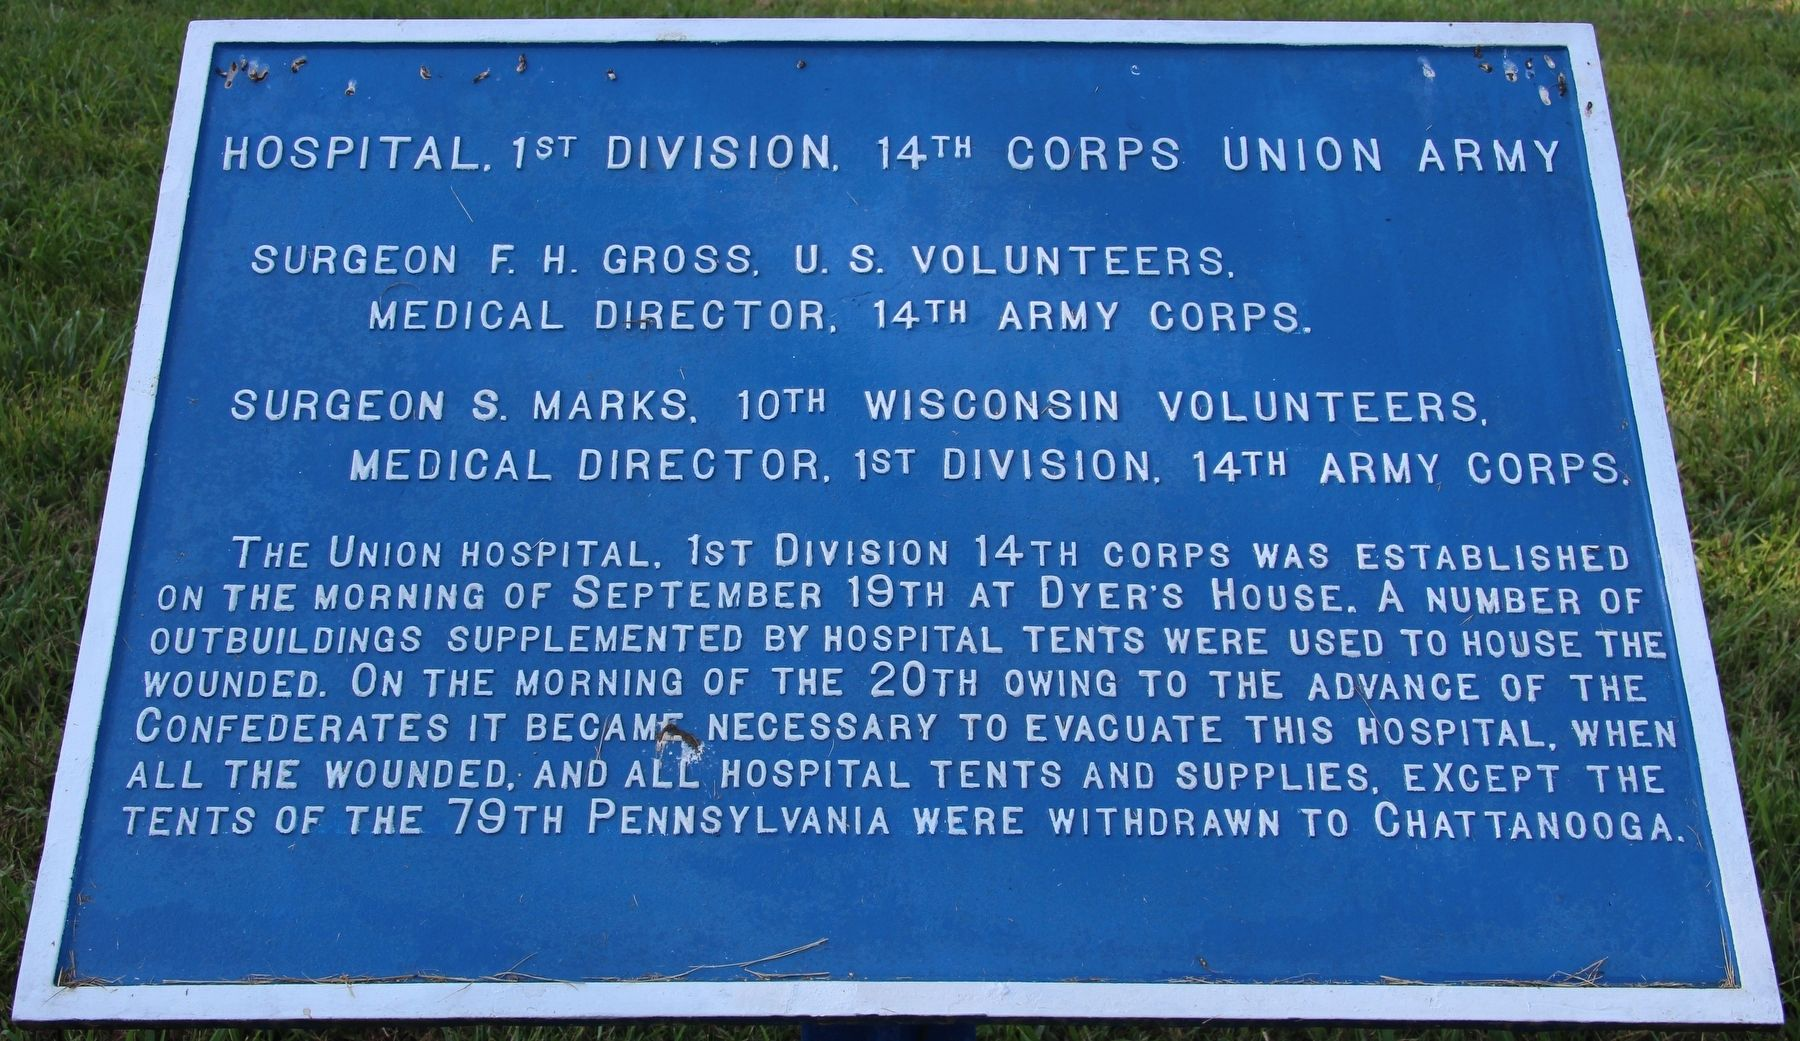 Hospital, 1st Division, 14th Corps Union Army Marker image. Click for full size.